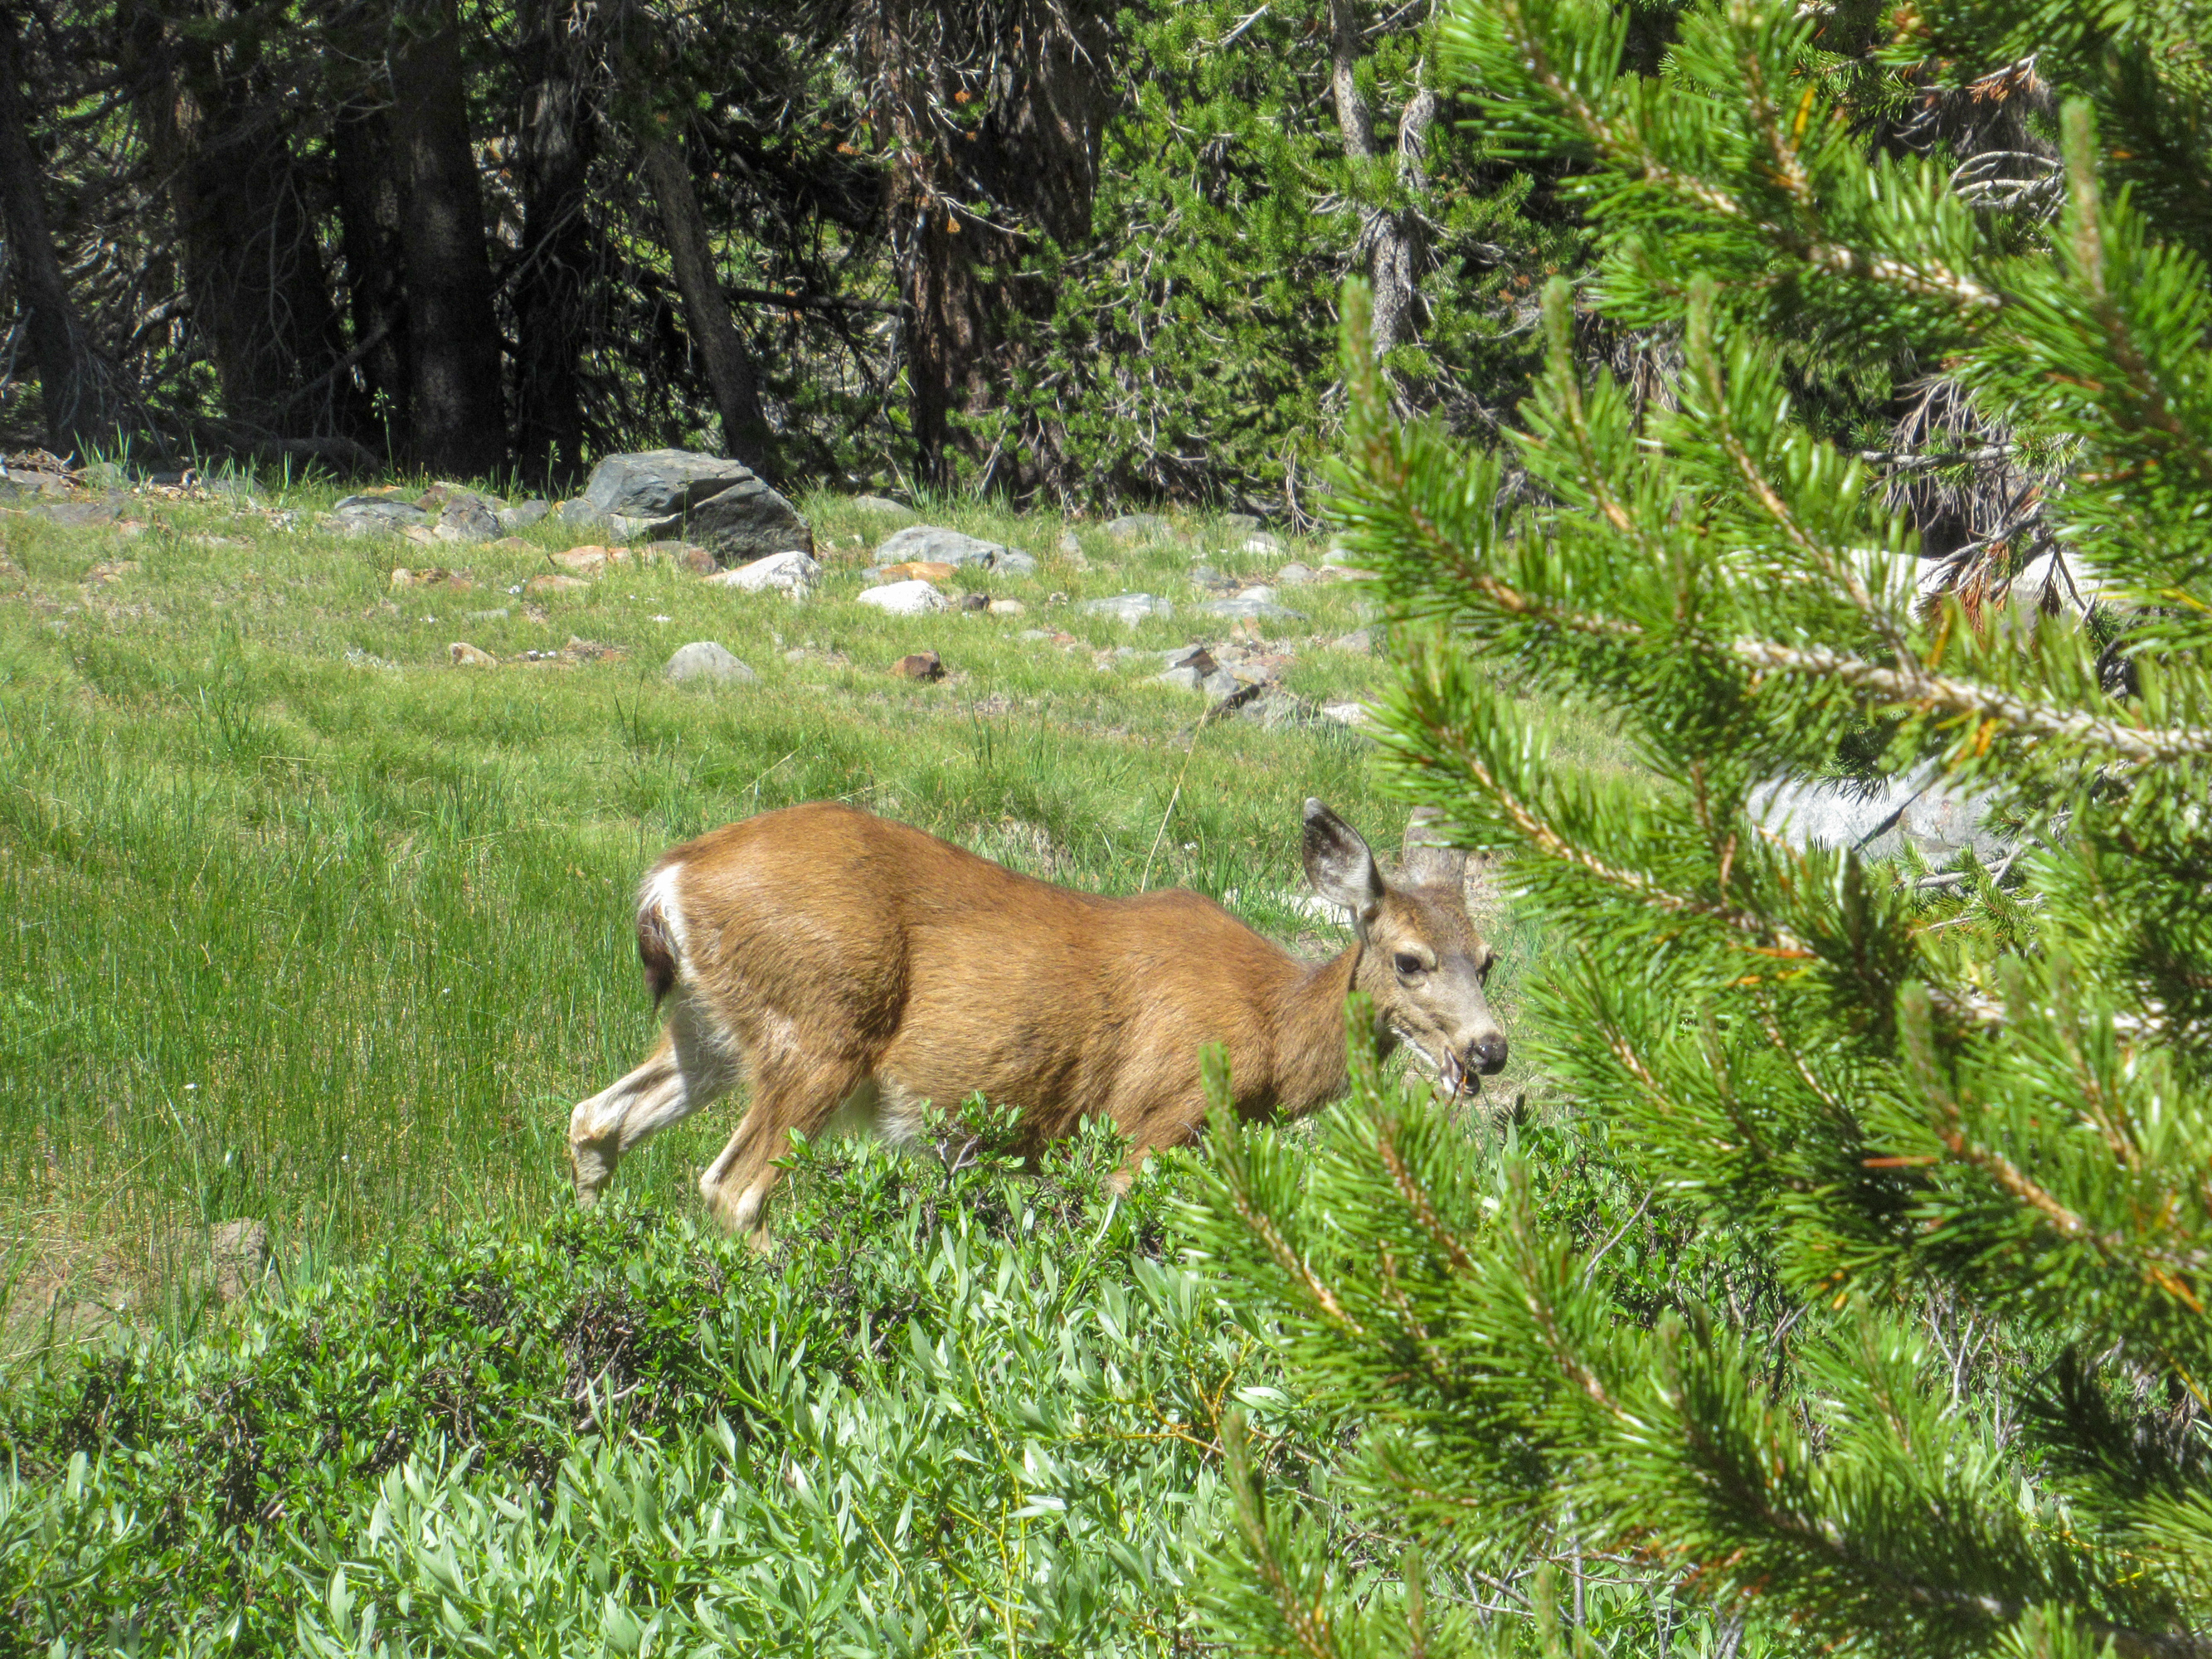 A deer seen at Mono Pass in Yosemite.